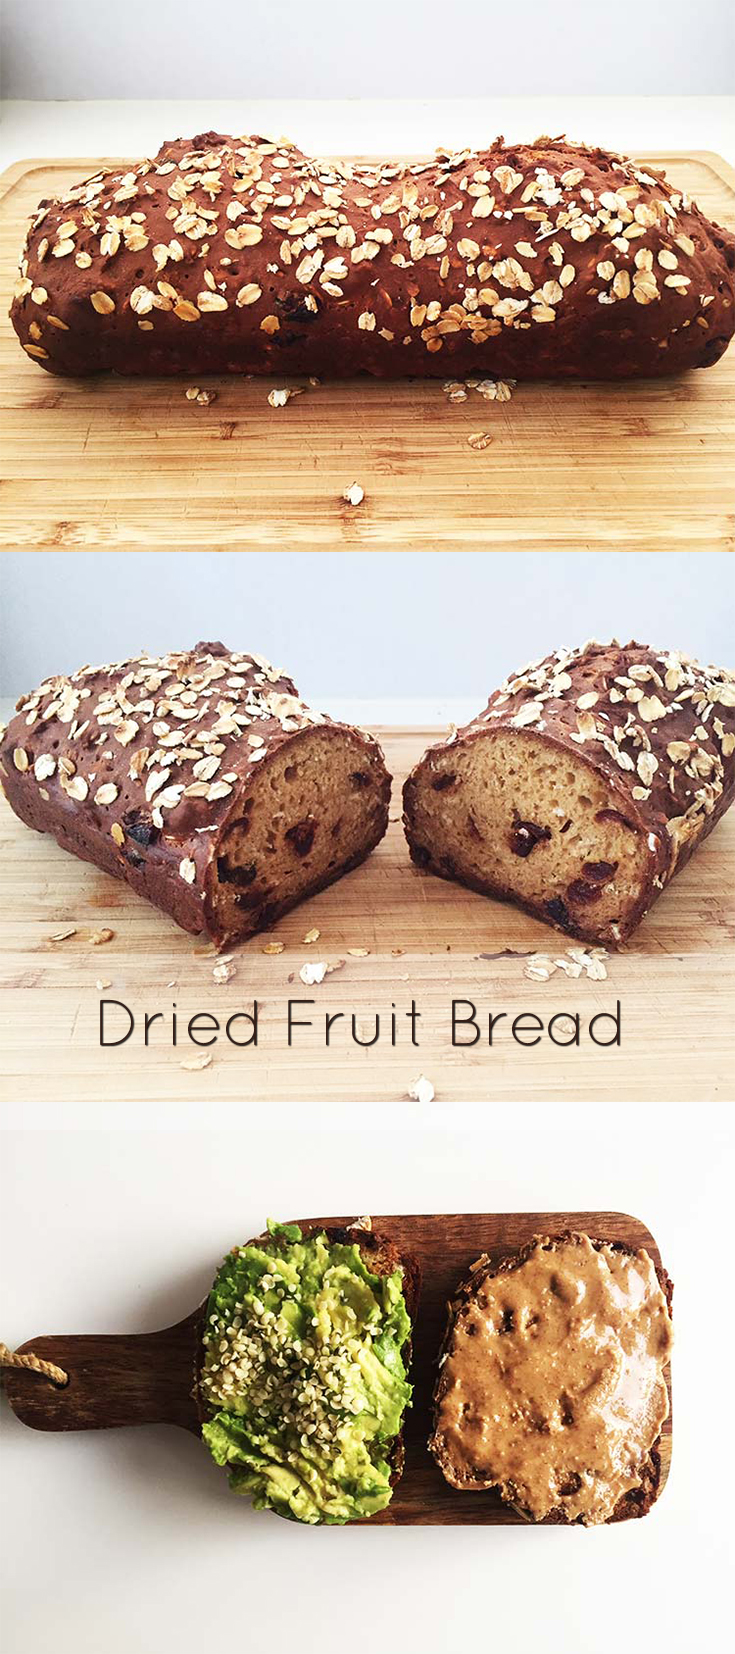 Every bite of this dried fruit bread is a treat. No yeast, no rising just mix the ingredients, pop it in a loaf form and bake in the oven.